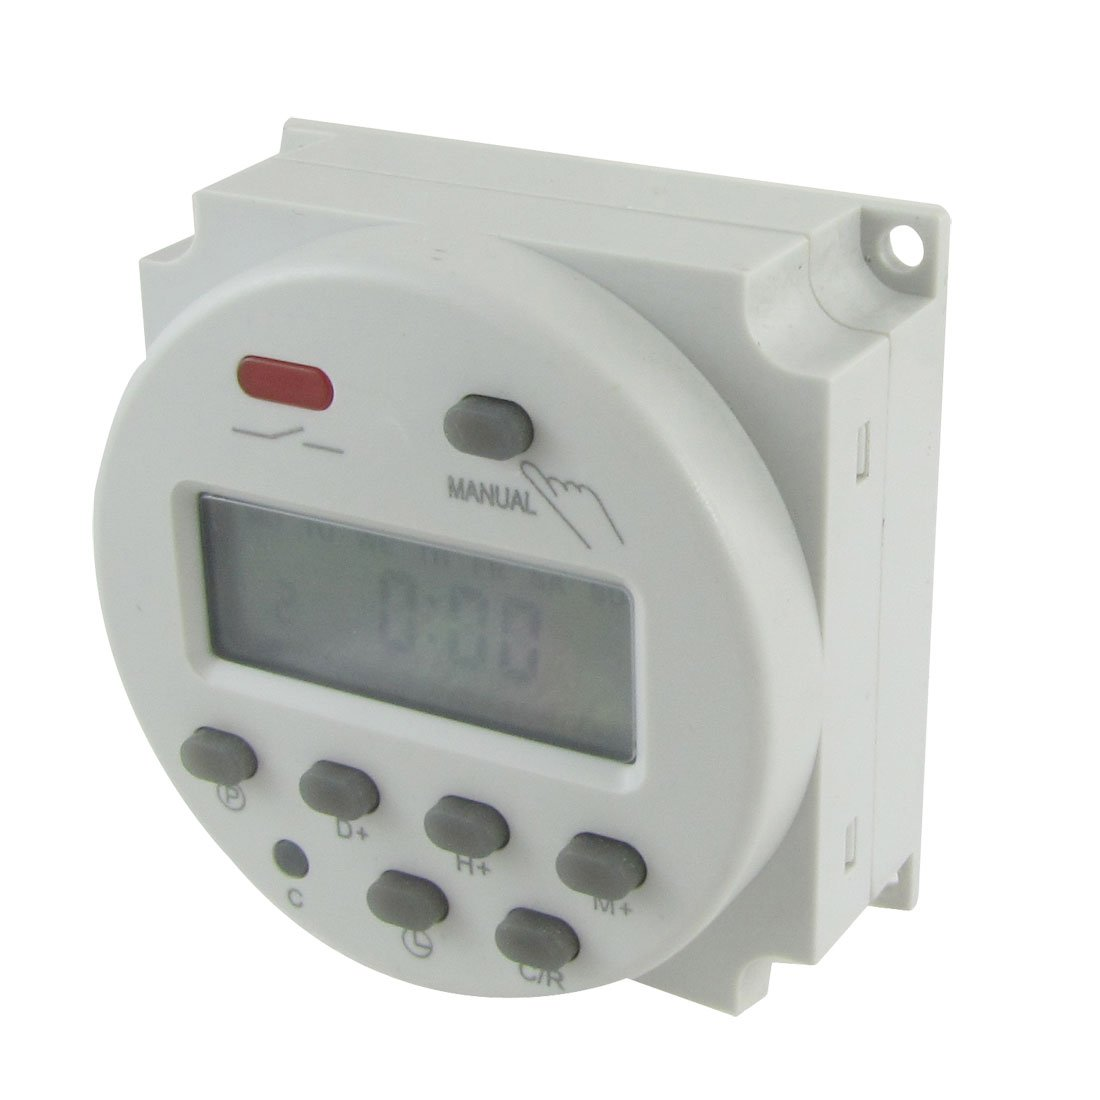 uxcell a12031200ux0079 DC 24V Digital LCD Power Programmable Timer Time Switch Relay 16A